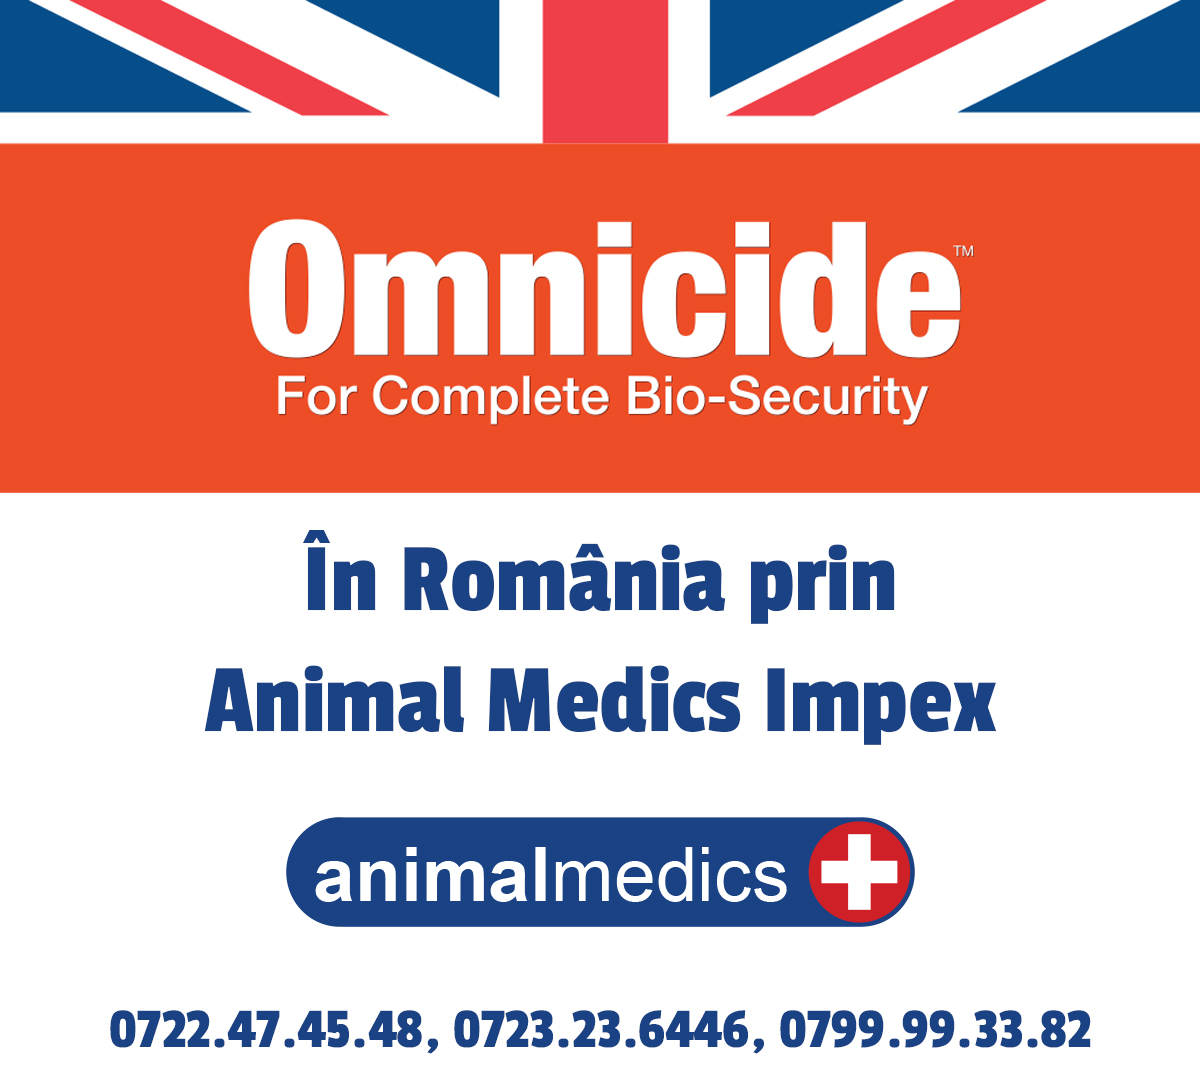 Omnicide for complet Bio-Security